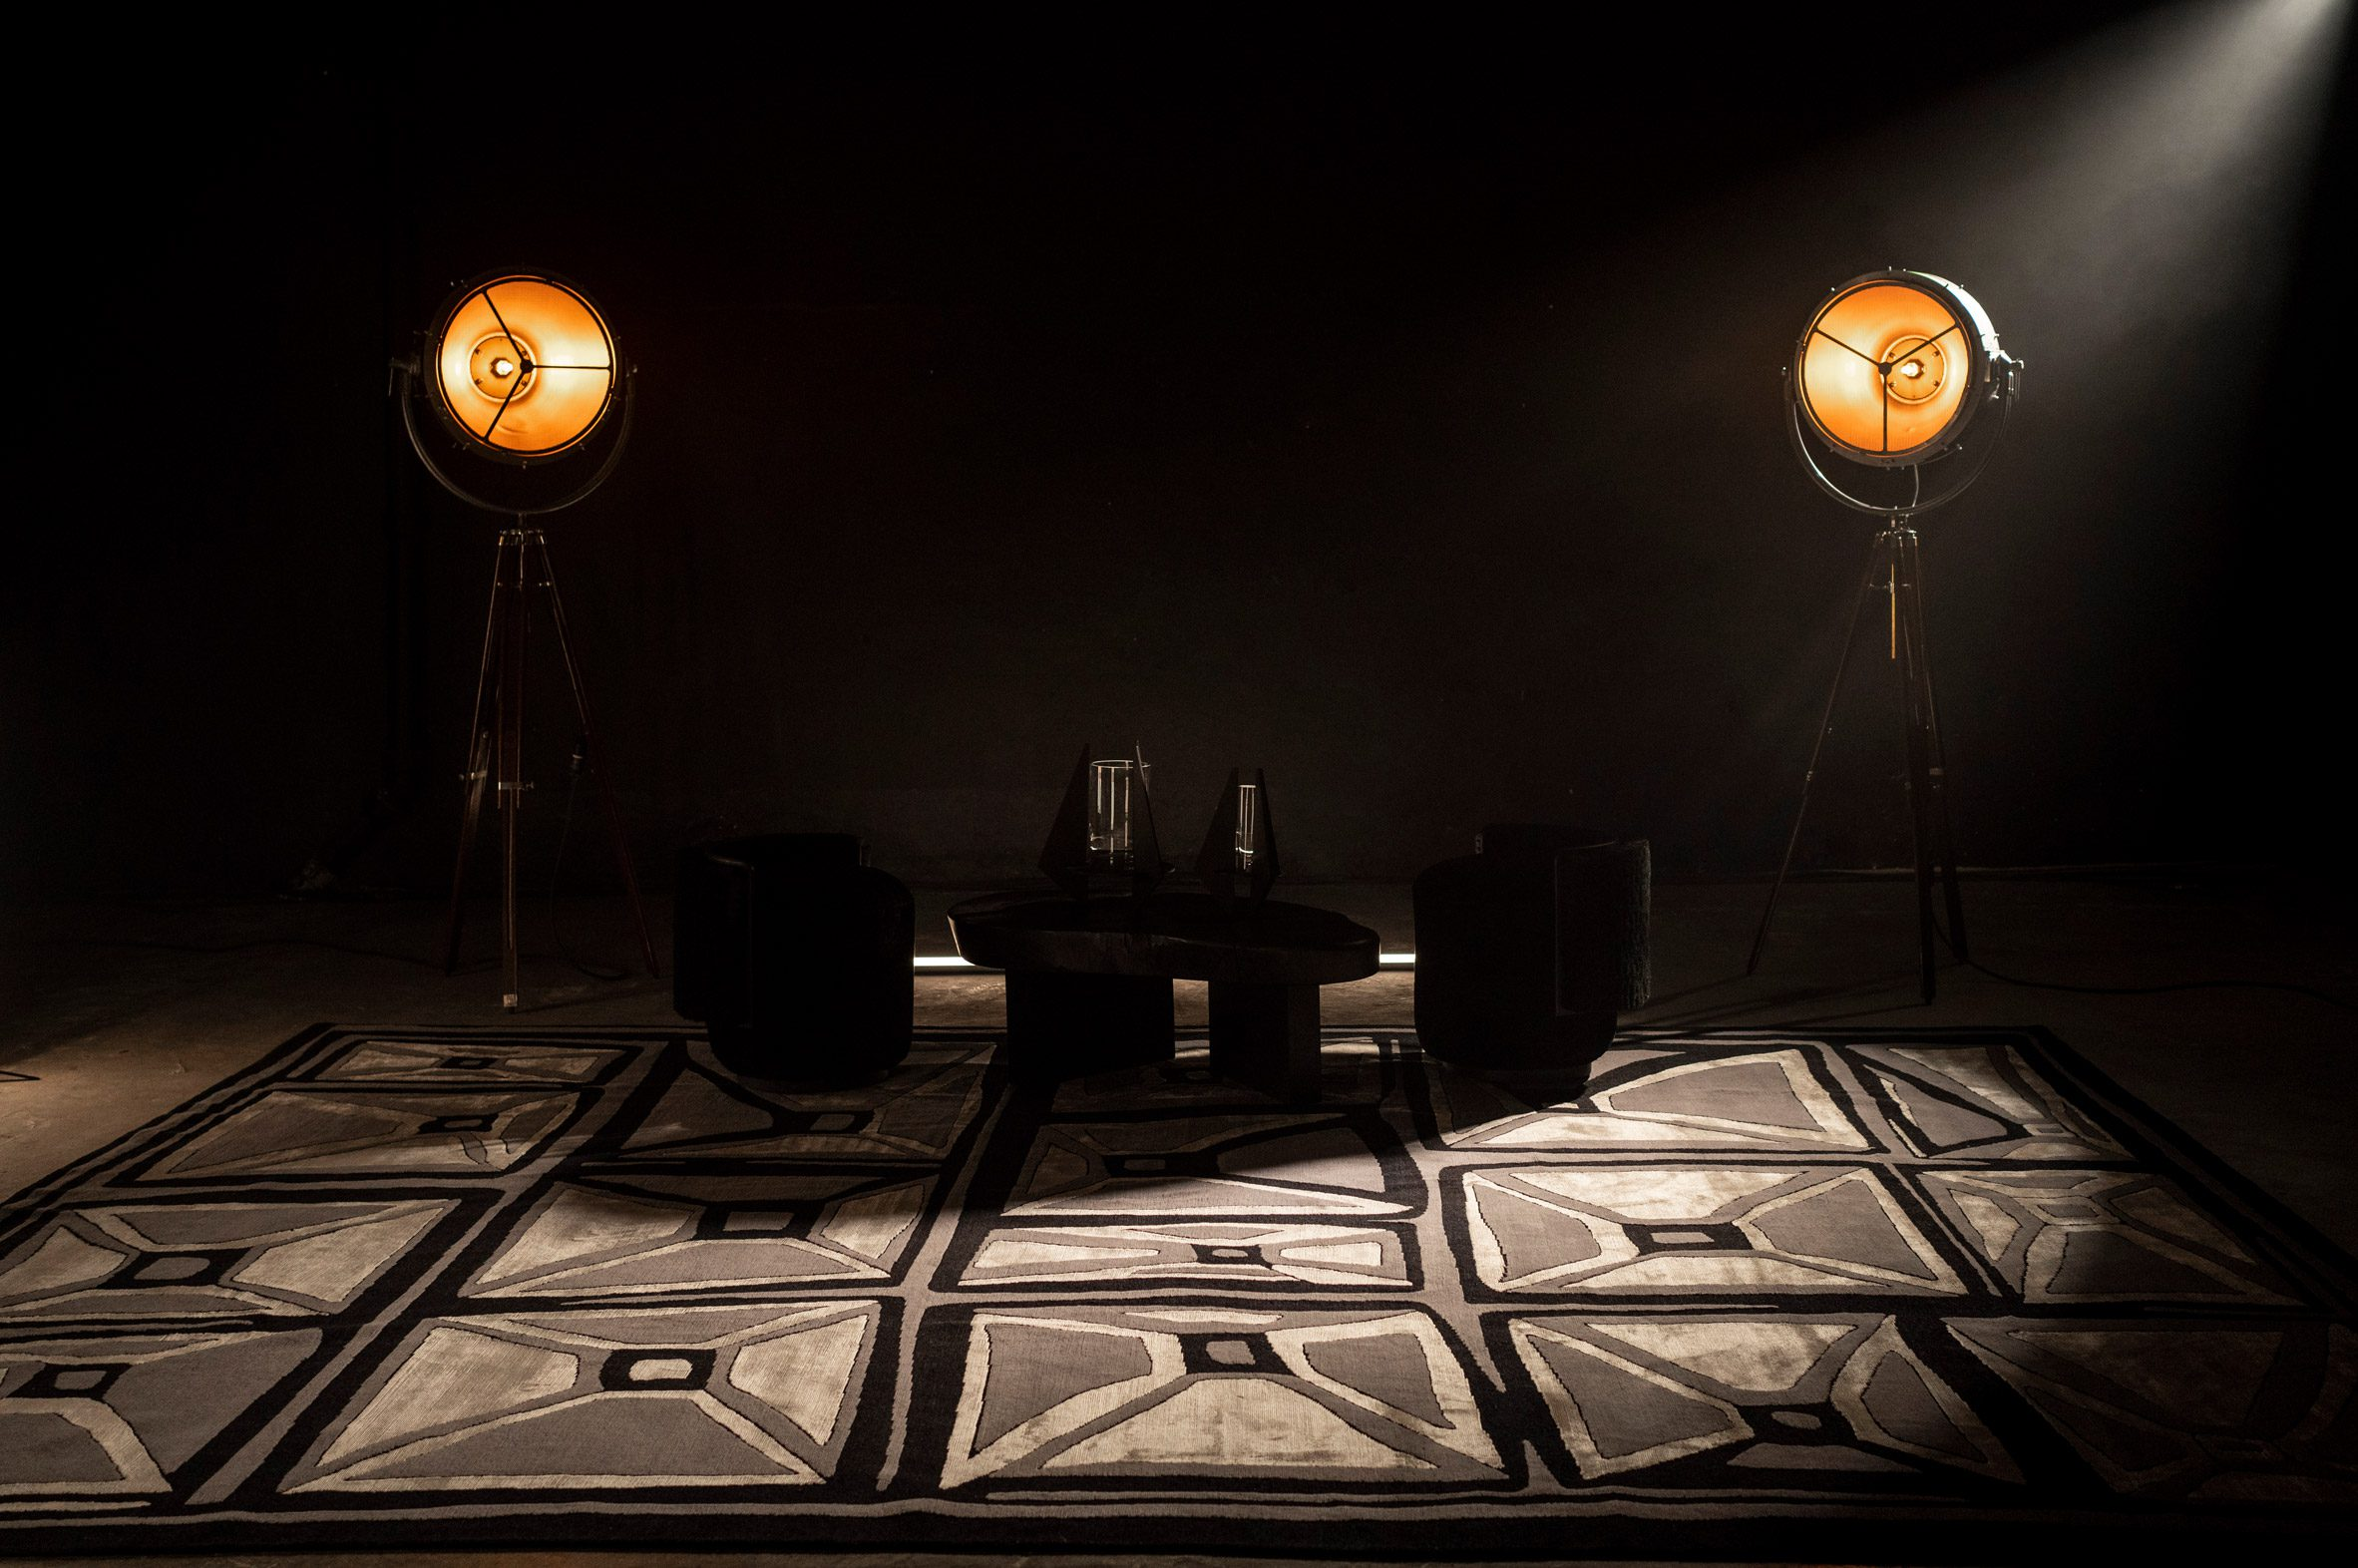 Tables, chairs and lights on a monochrome Meteorito rug